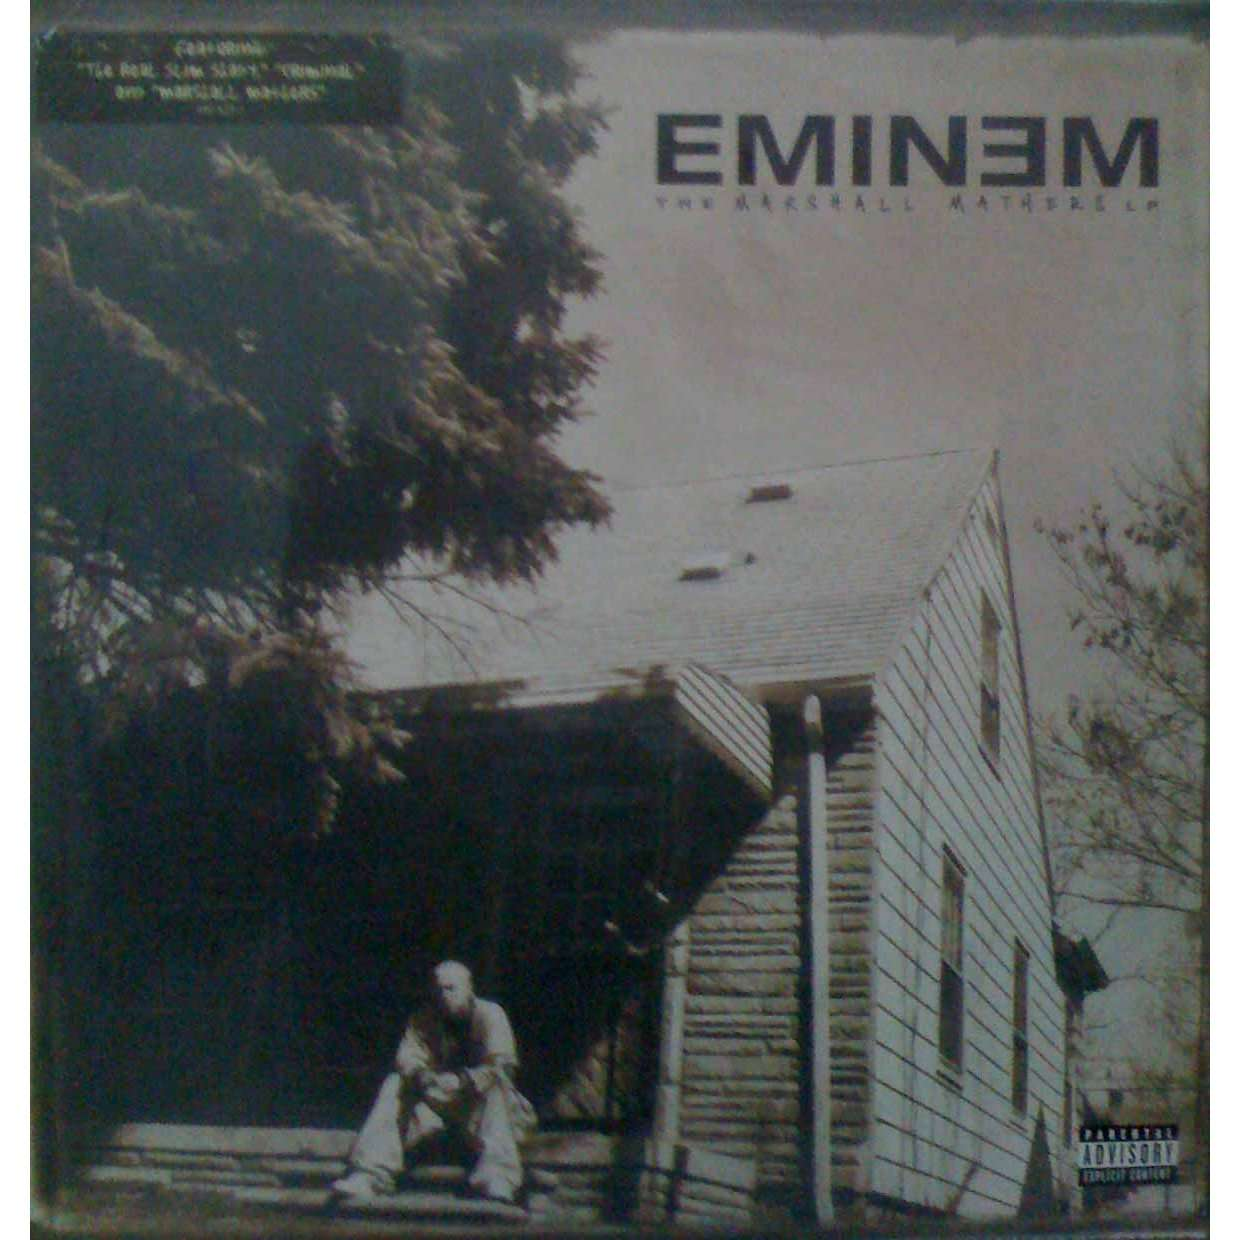 The marshall mathers by Eminem, LP with metro - Ref:113877130